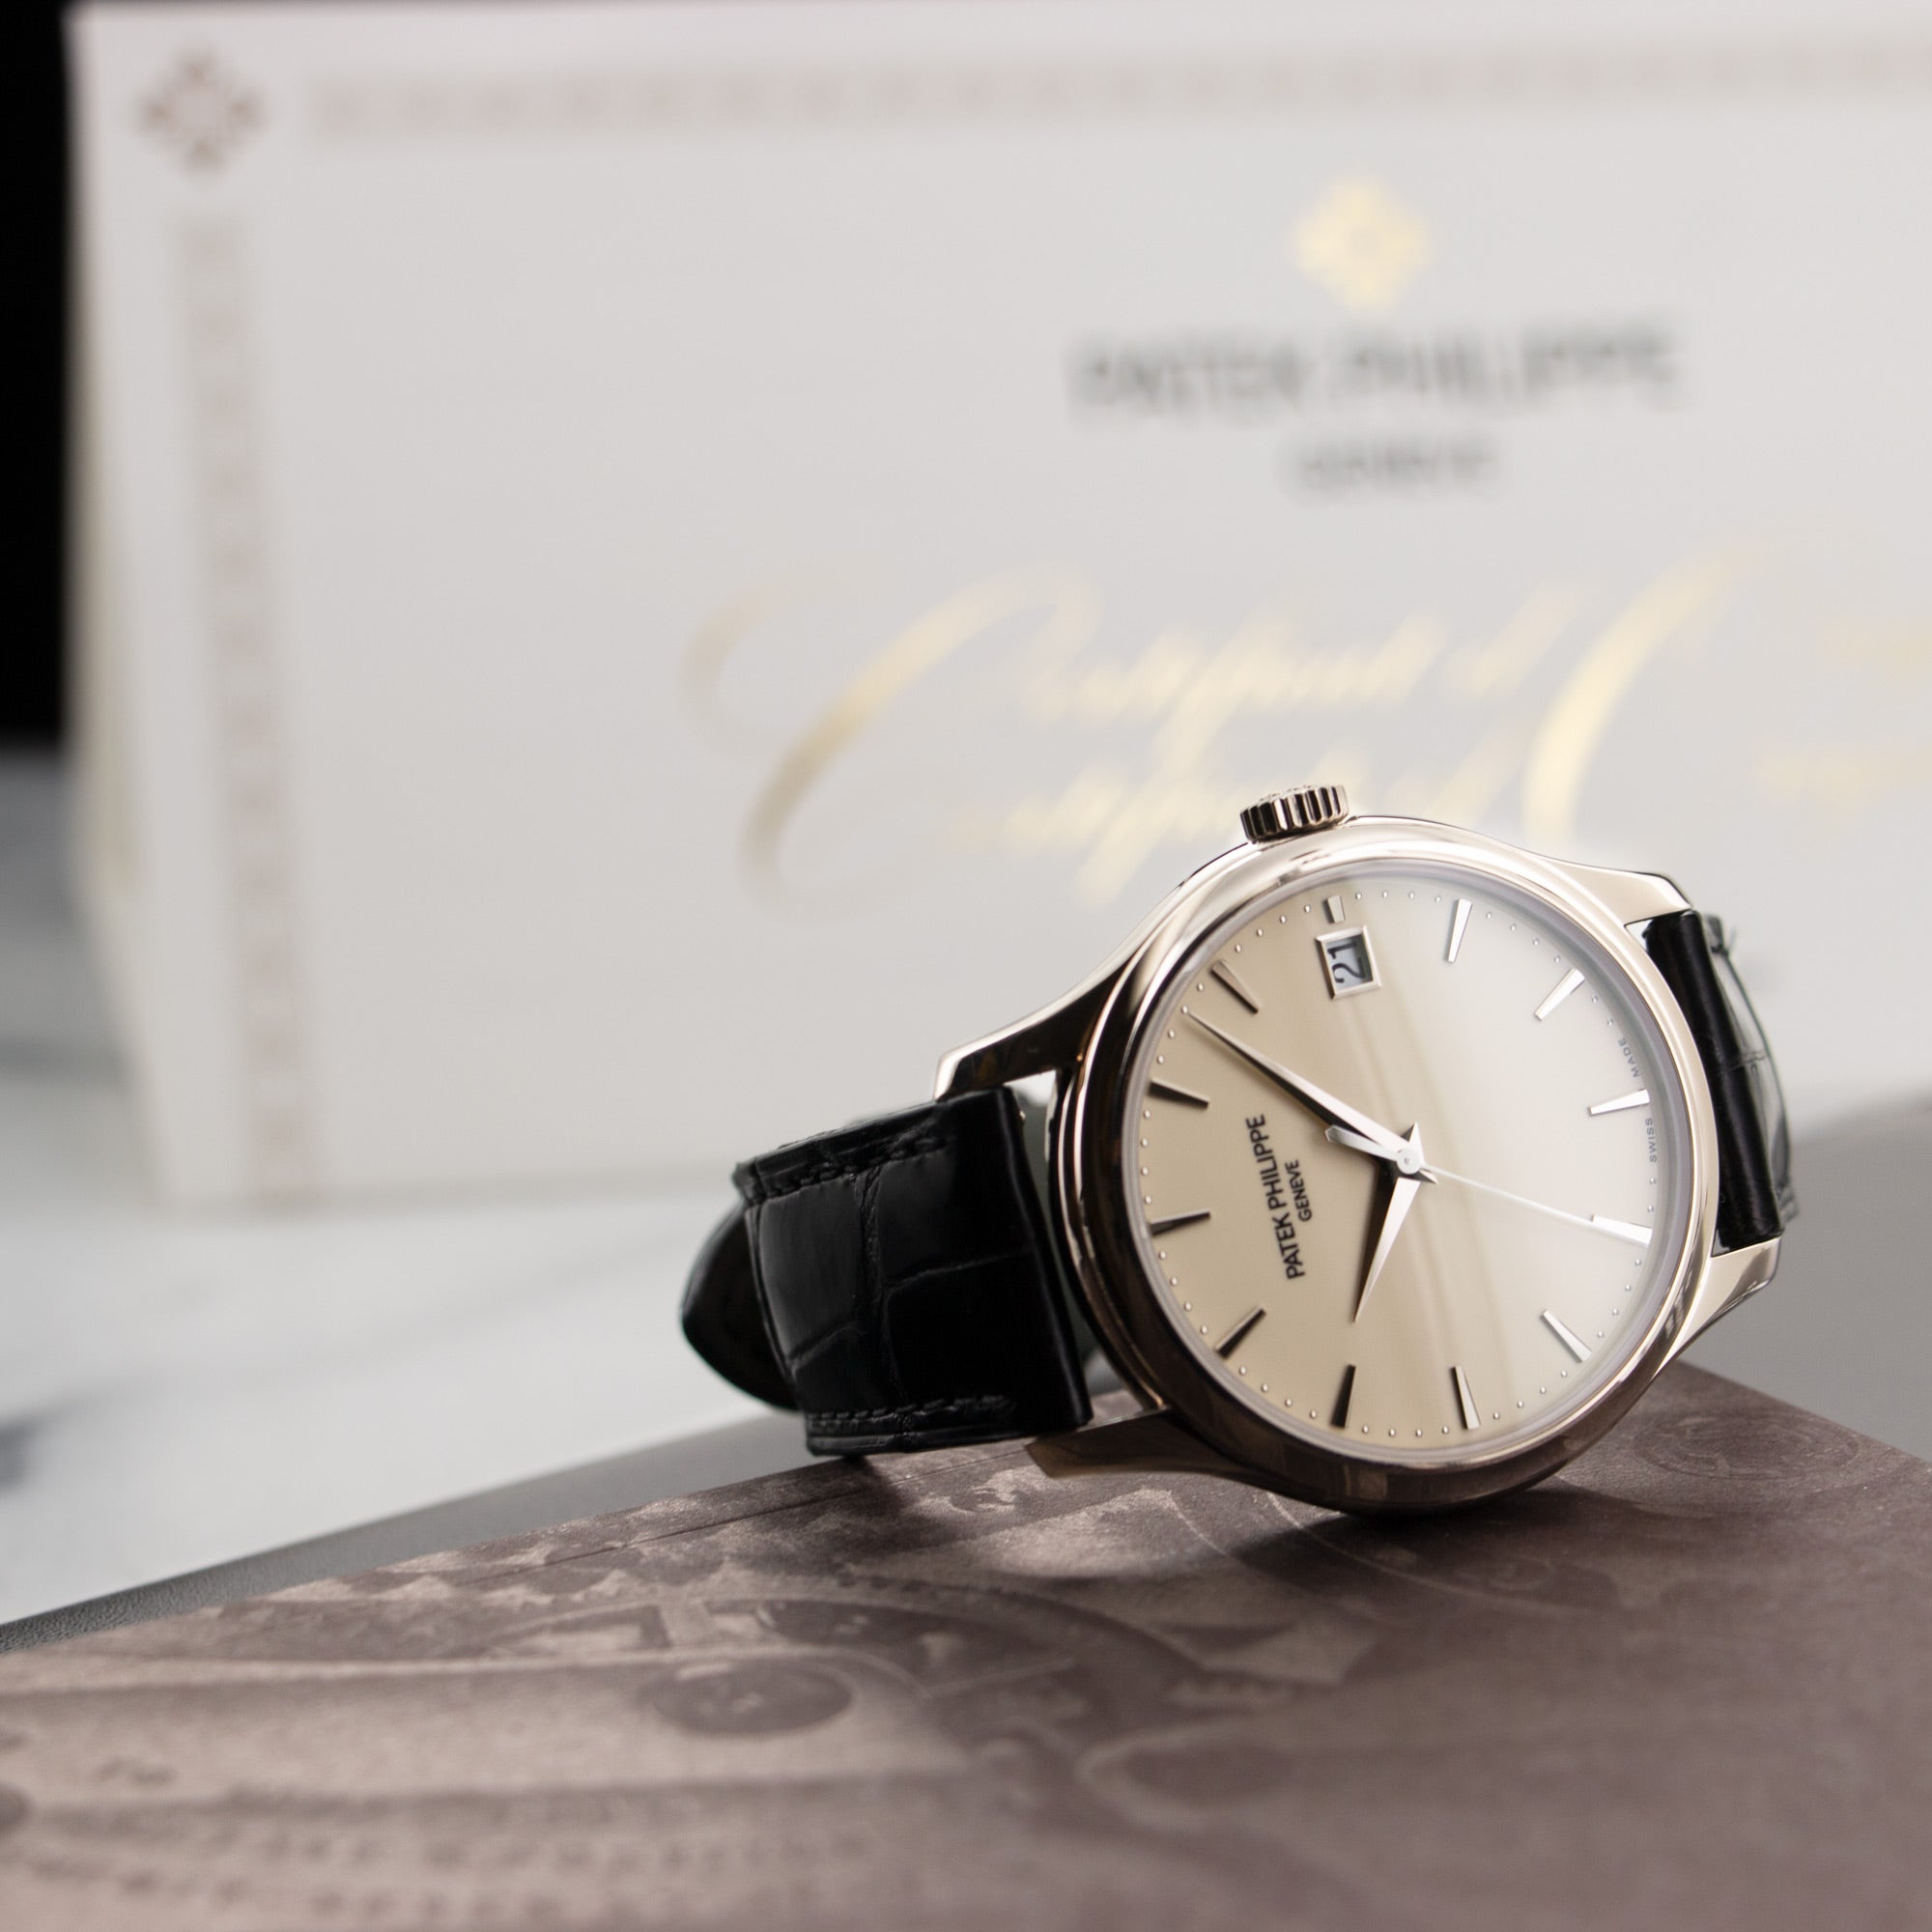 Patek Philippe Calatrava 5227G-001 18k WG  Like New, Worn a Few Times Gents 18k WG Ivory 39mm Automatic 2017 Black Crocodile Original Box and Certificate